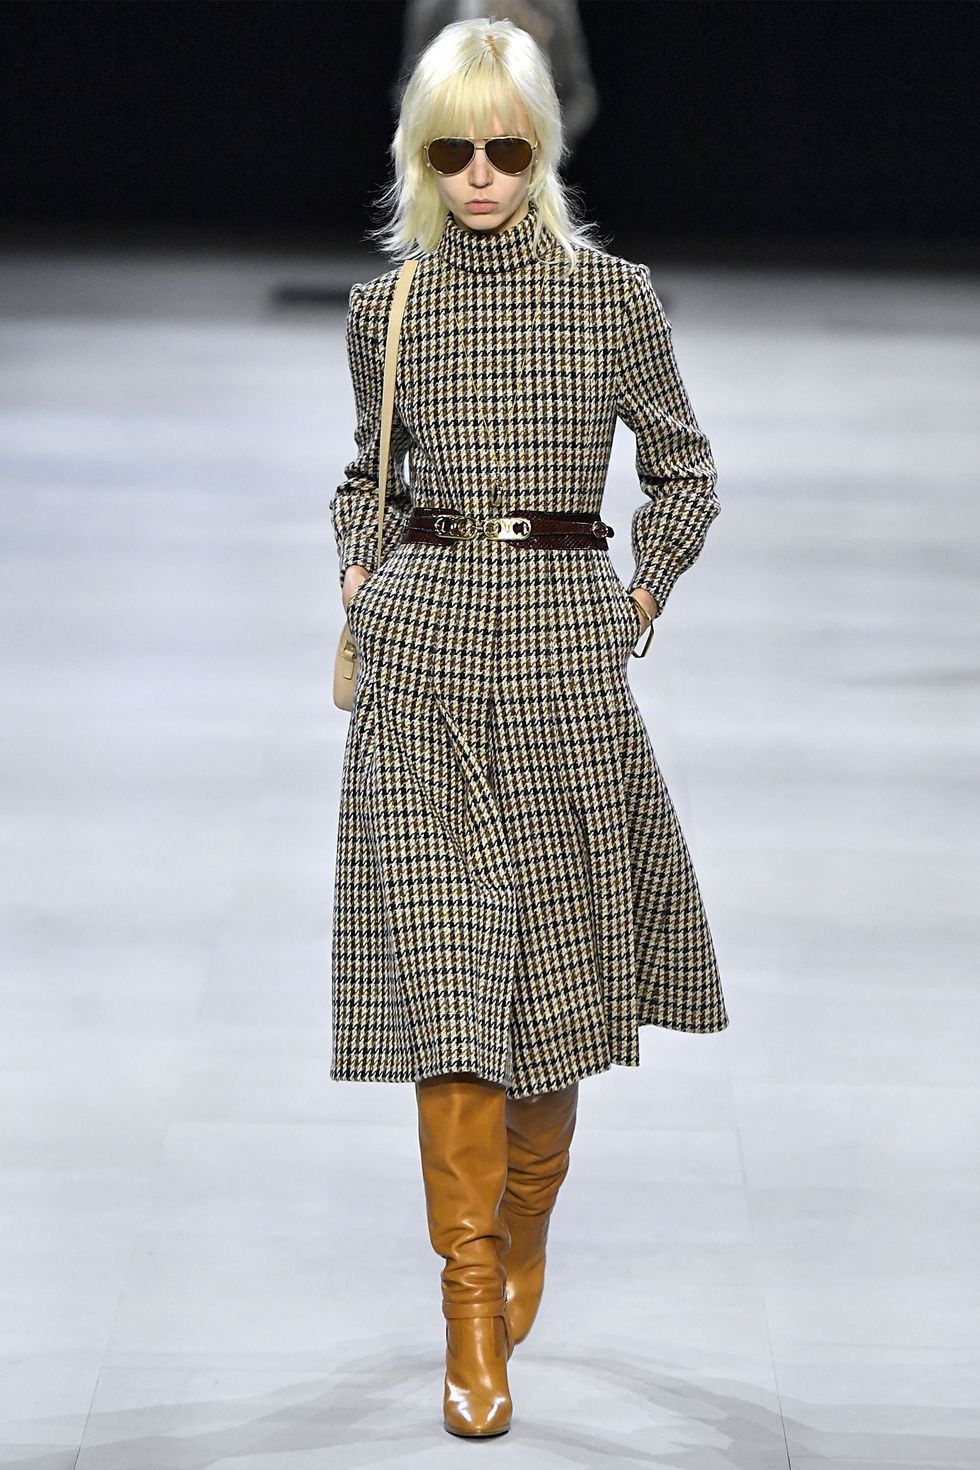 hbz-fw2019-trends-english-tweed-02-gettyimages-1133145428.jpg